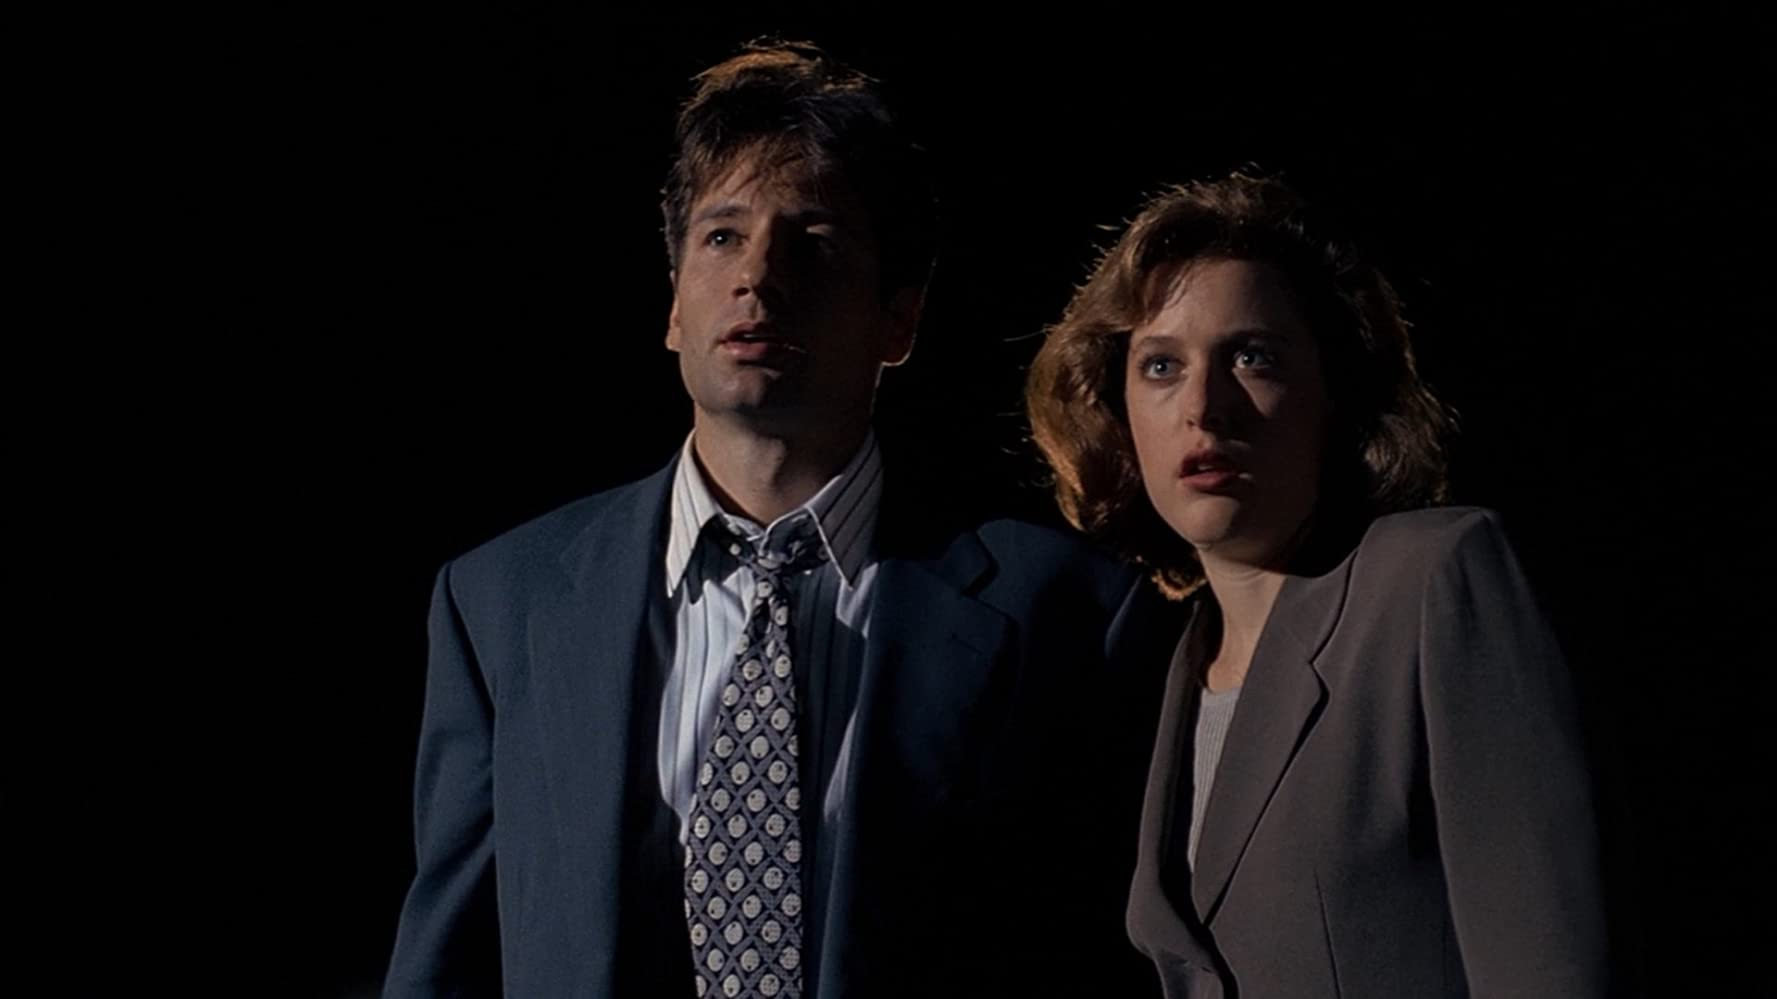 Gillian Anderson and David Duchovny in The X Files (1993)